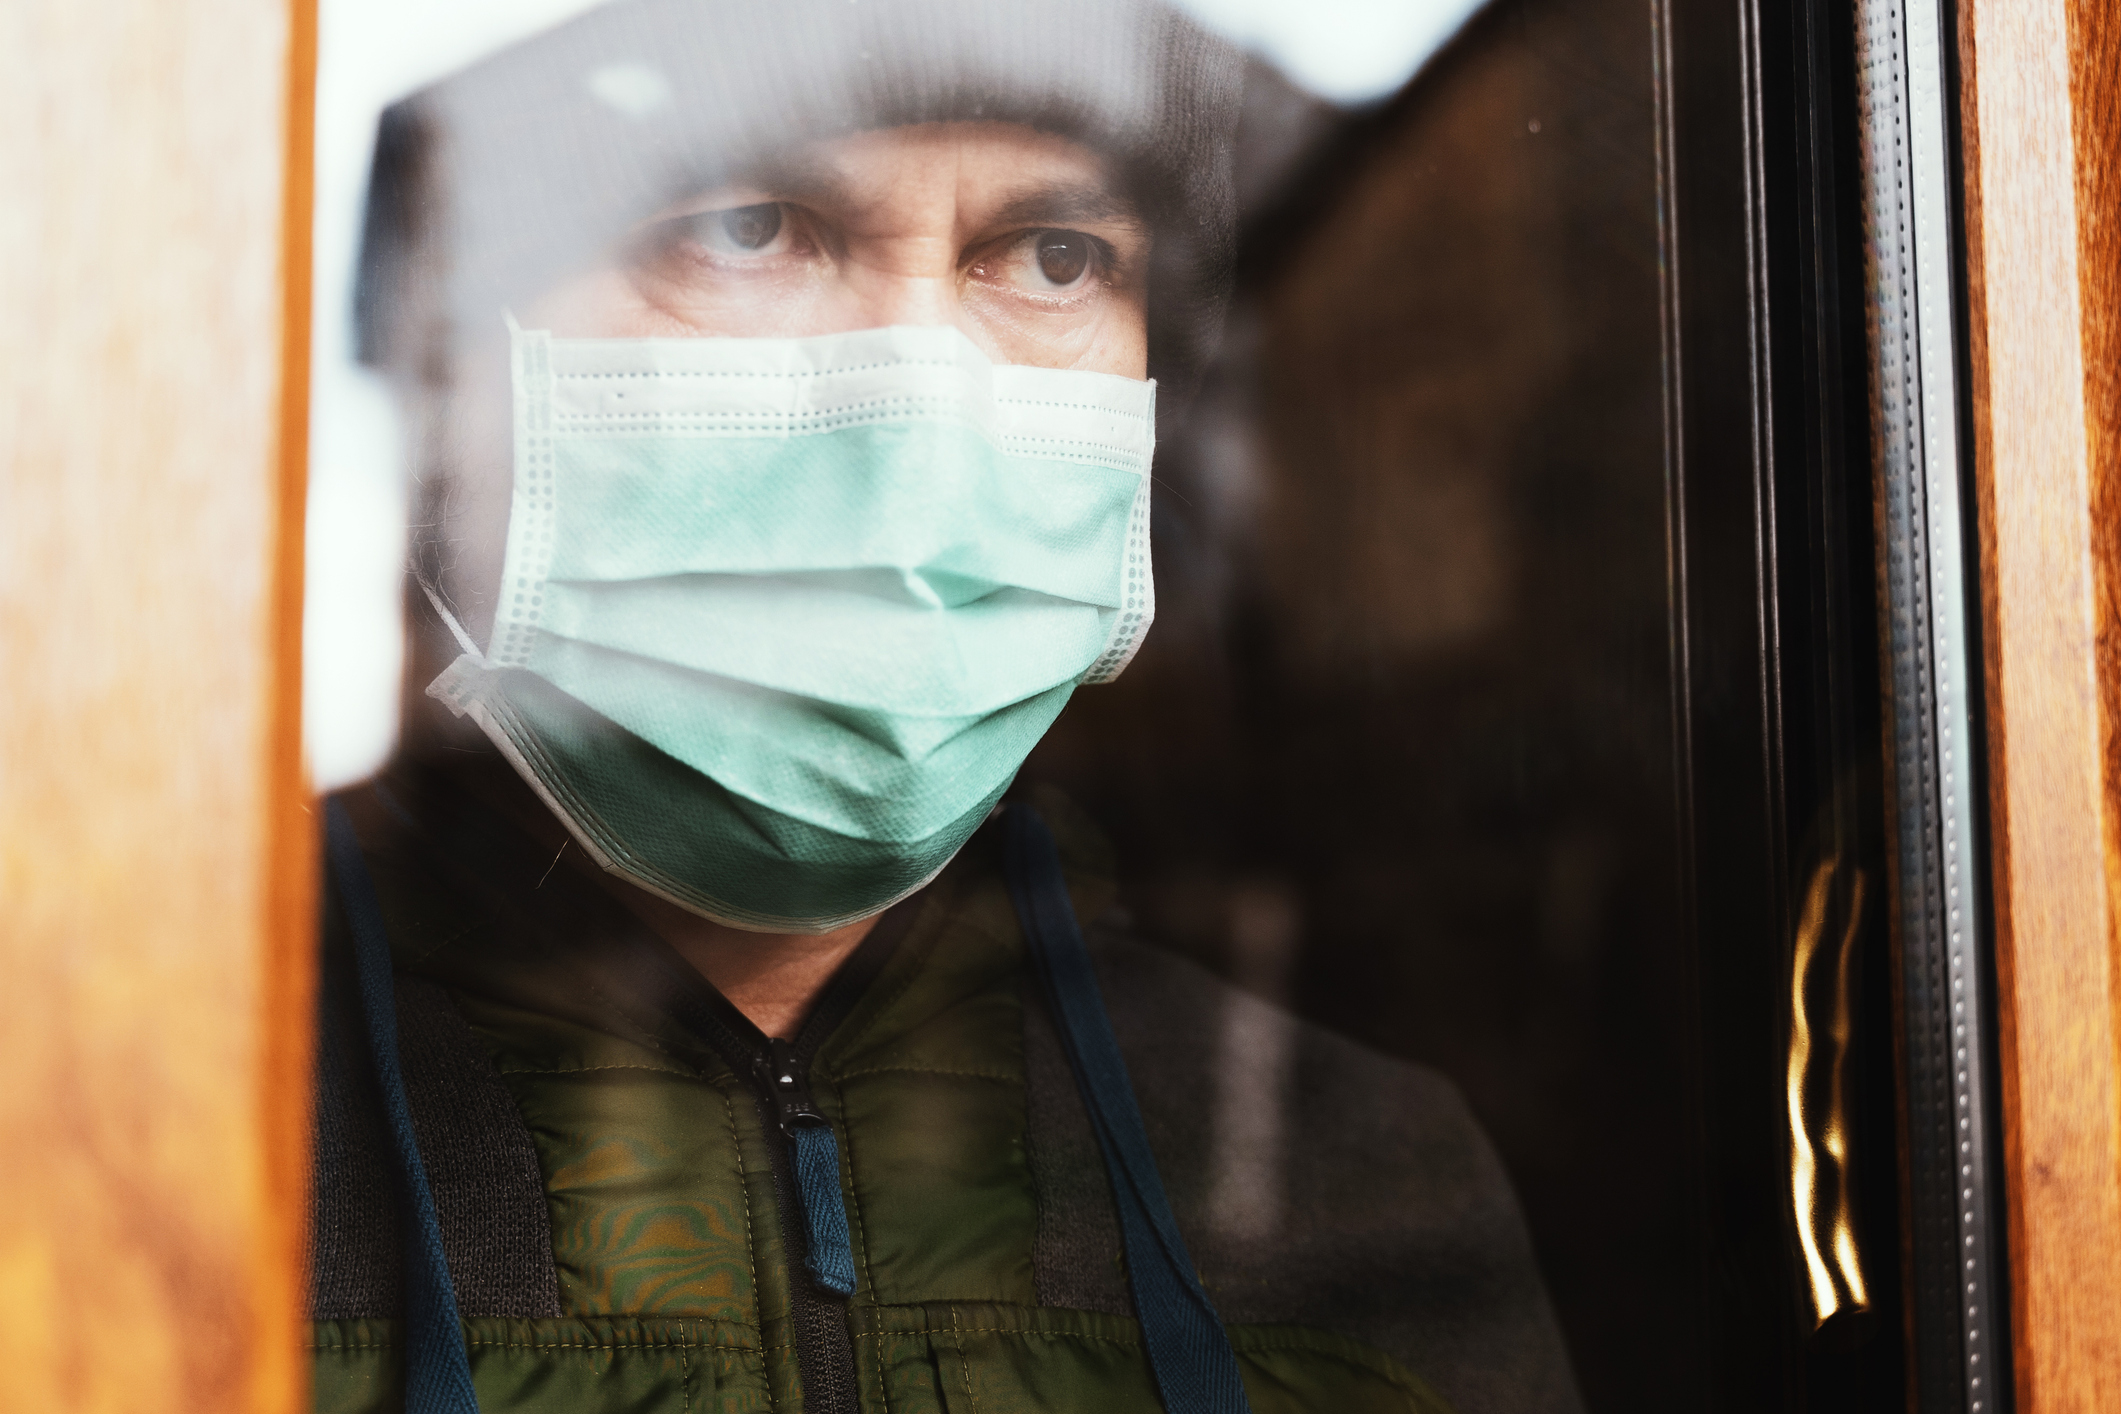 An Infected Man On Quarantine At Home Wearing A Face Mask At Home And Looking Through The Window